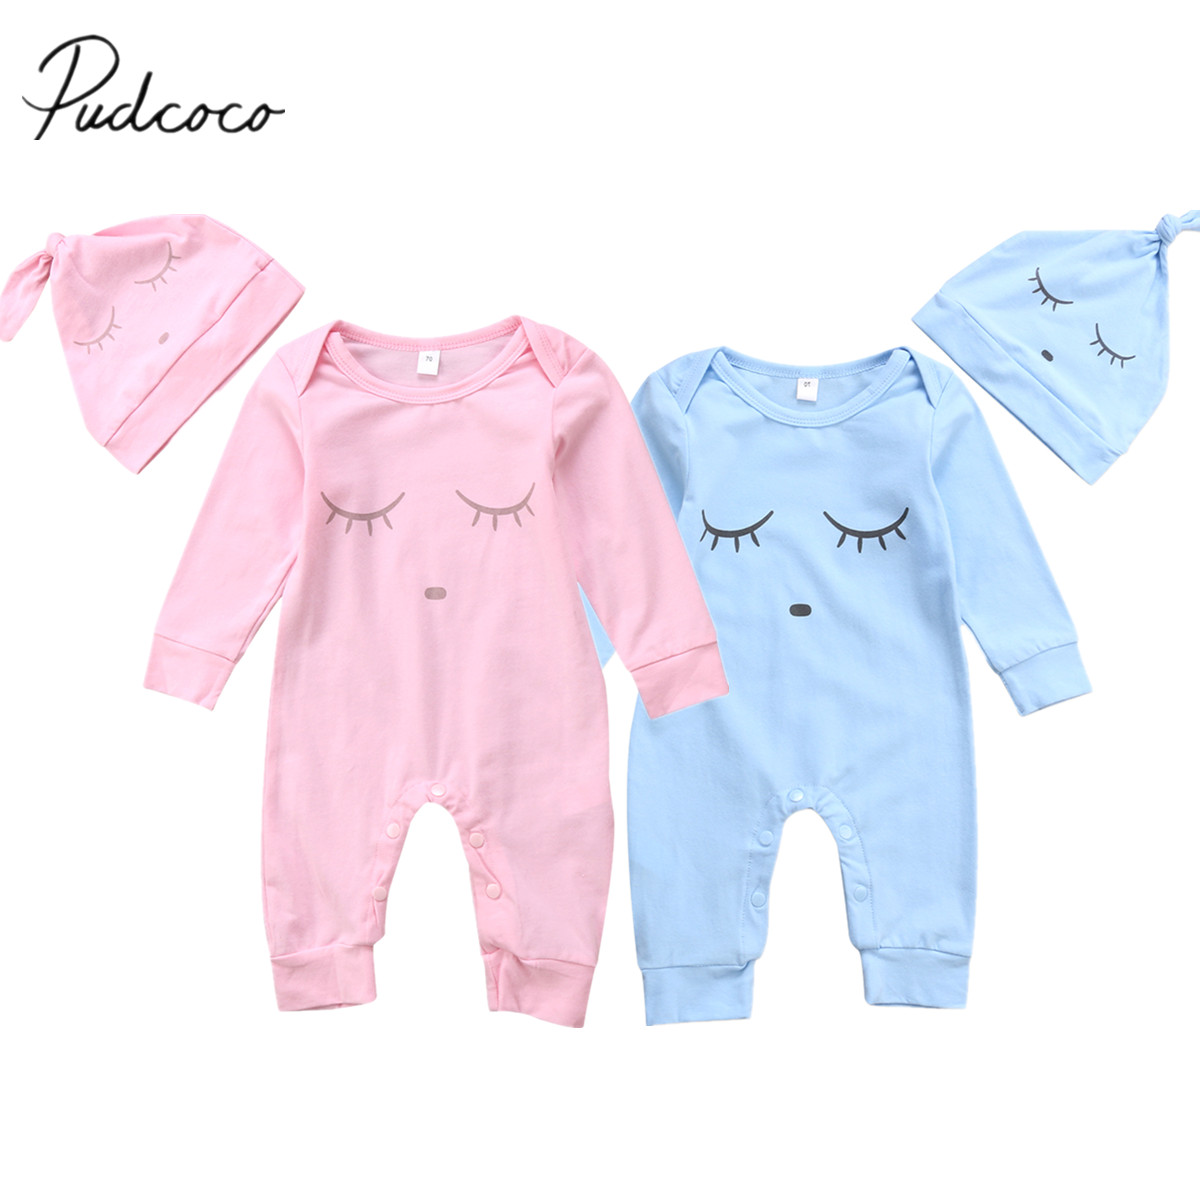 2017 Brand New Infant Toddler Baby Boy Girl Sleep Eyes Romper Jumpsuit Long Sleeve Playsuit Hat 2pcs Clothes Outfit Cute Set newborn infant baby boy girl clothing cute hooded clothes romper long sleeve striped jumpsuit baby boys outfit